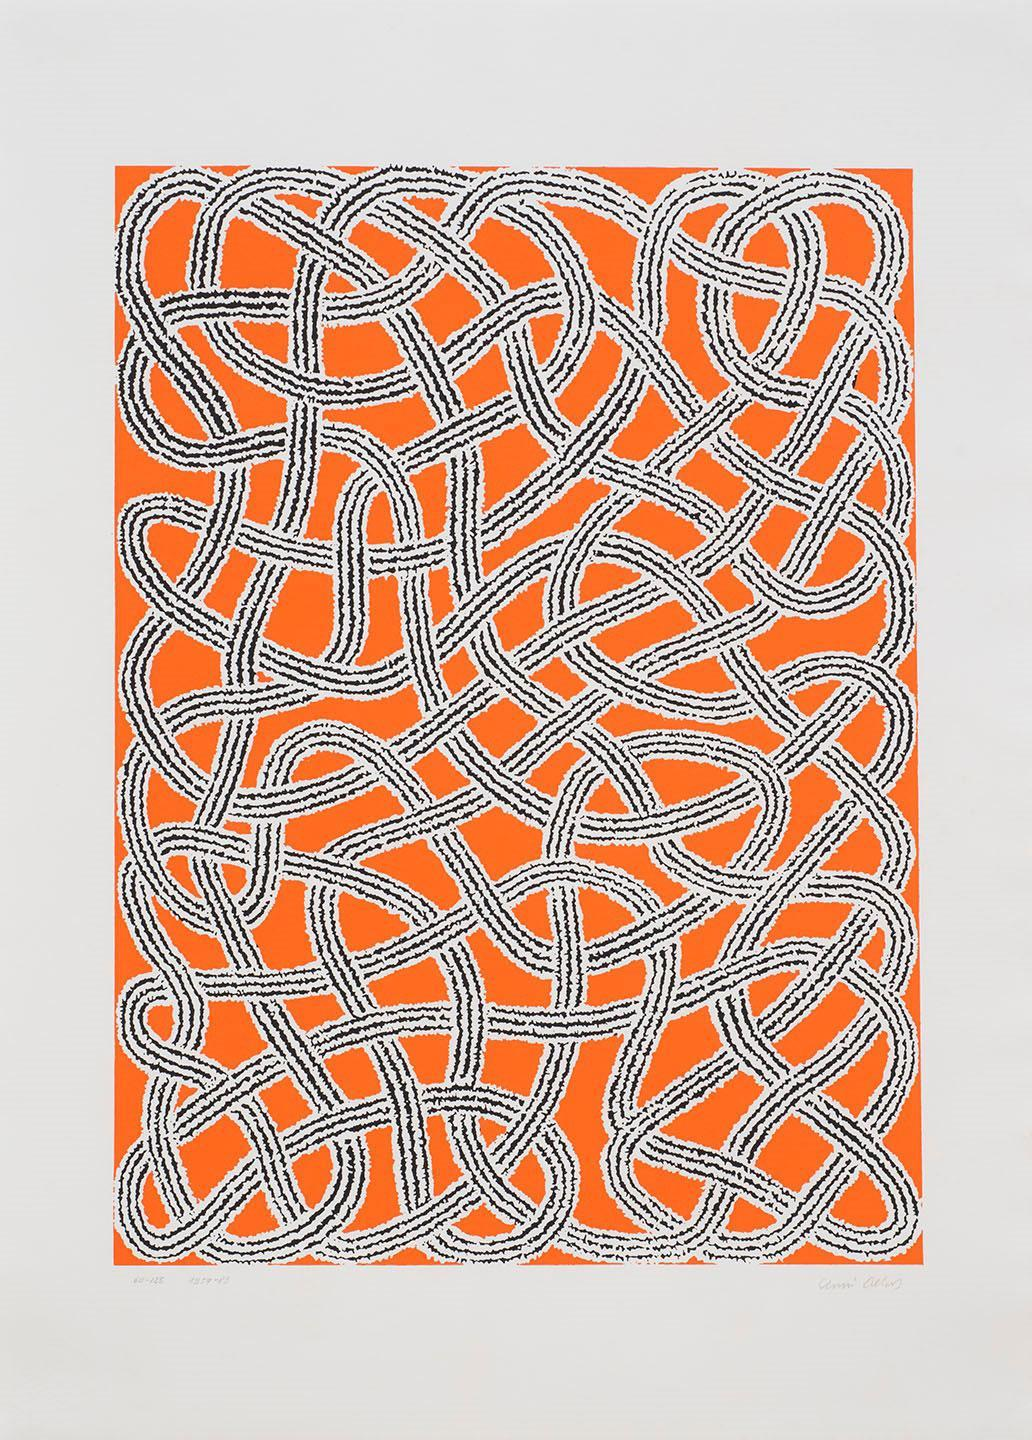 """Anni Albers, """"Study for Nylon Rug from Connections,"""" 1959/1983. Silkscreen on paper, ed. 60/125. Courtesy of The Johnson Collection."""